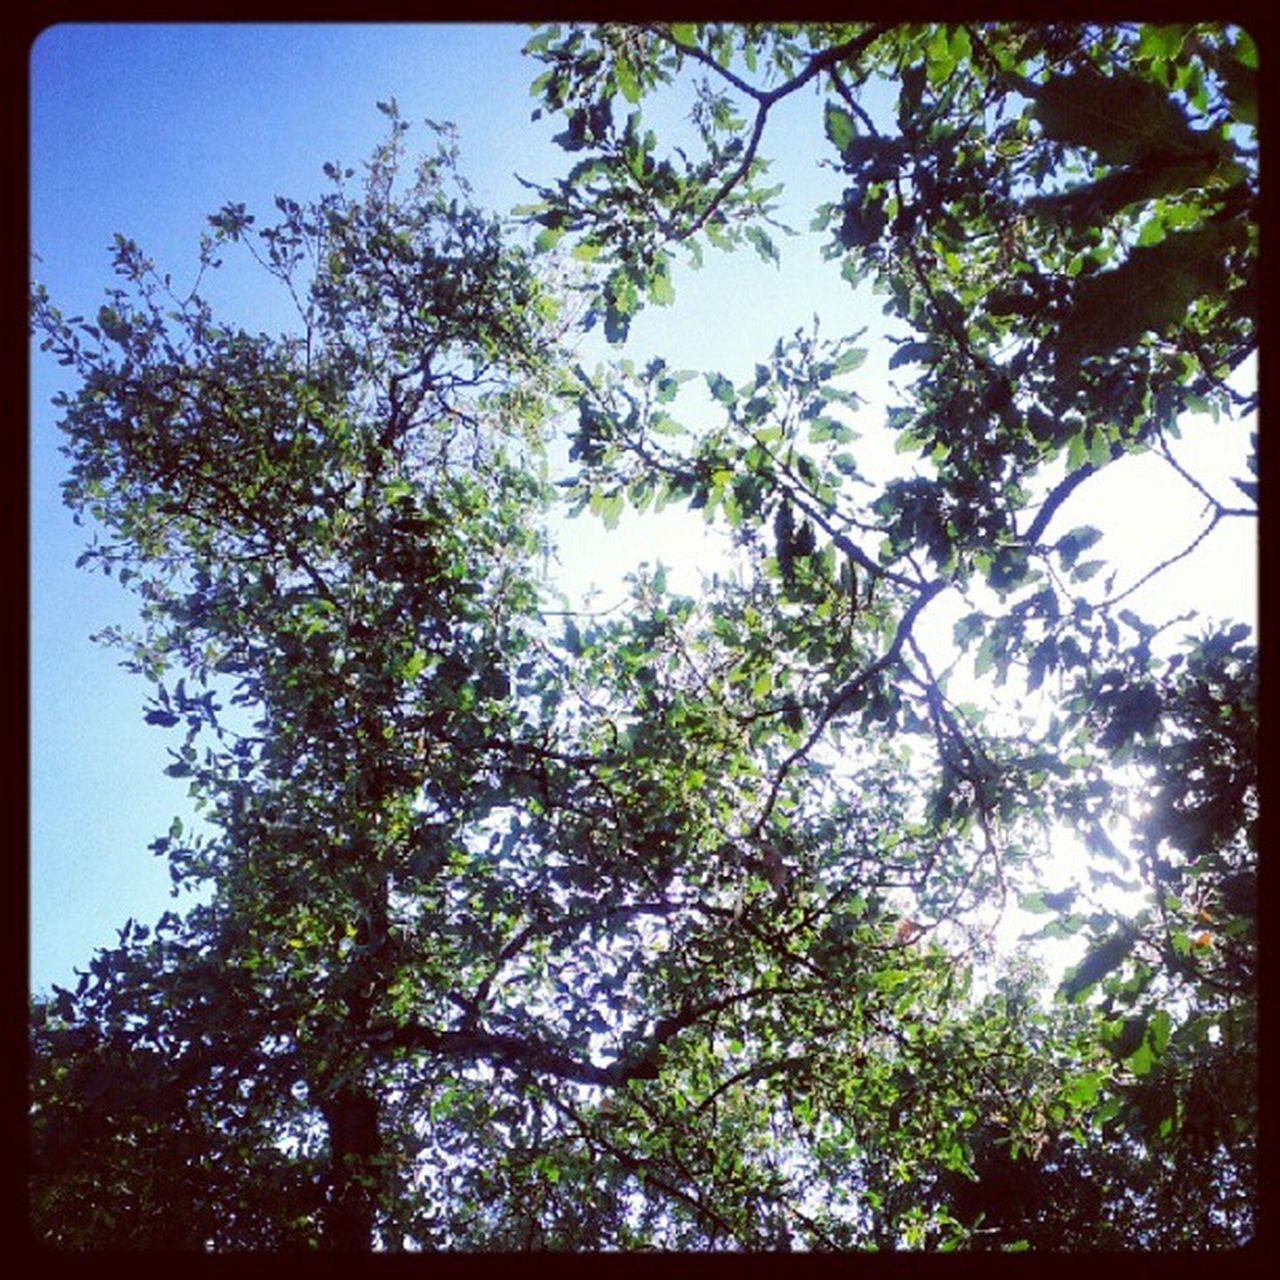 tree, nature, growth, low angle view, branch, no people, day, beauty in nature, forest, clear sky, outdoors, sunshine, blue sky, sky